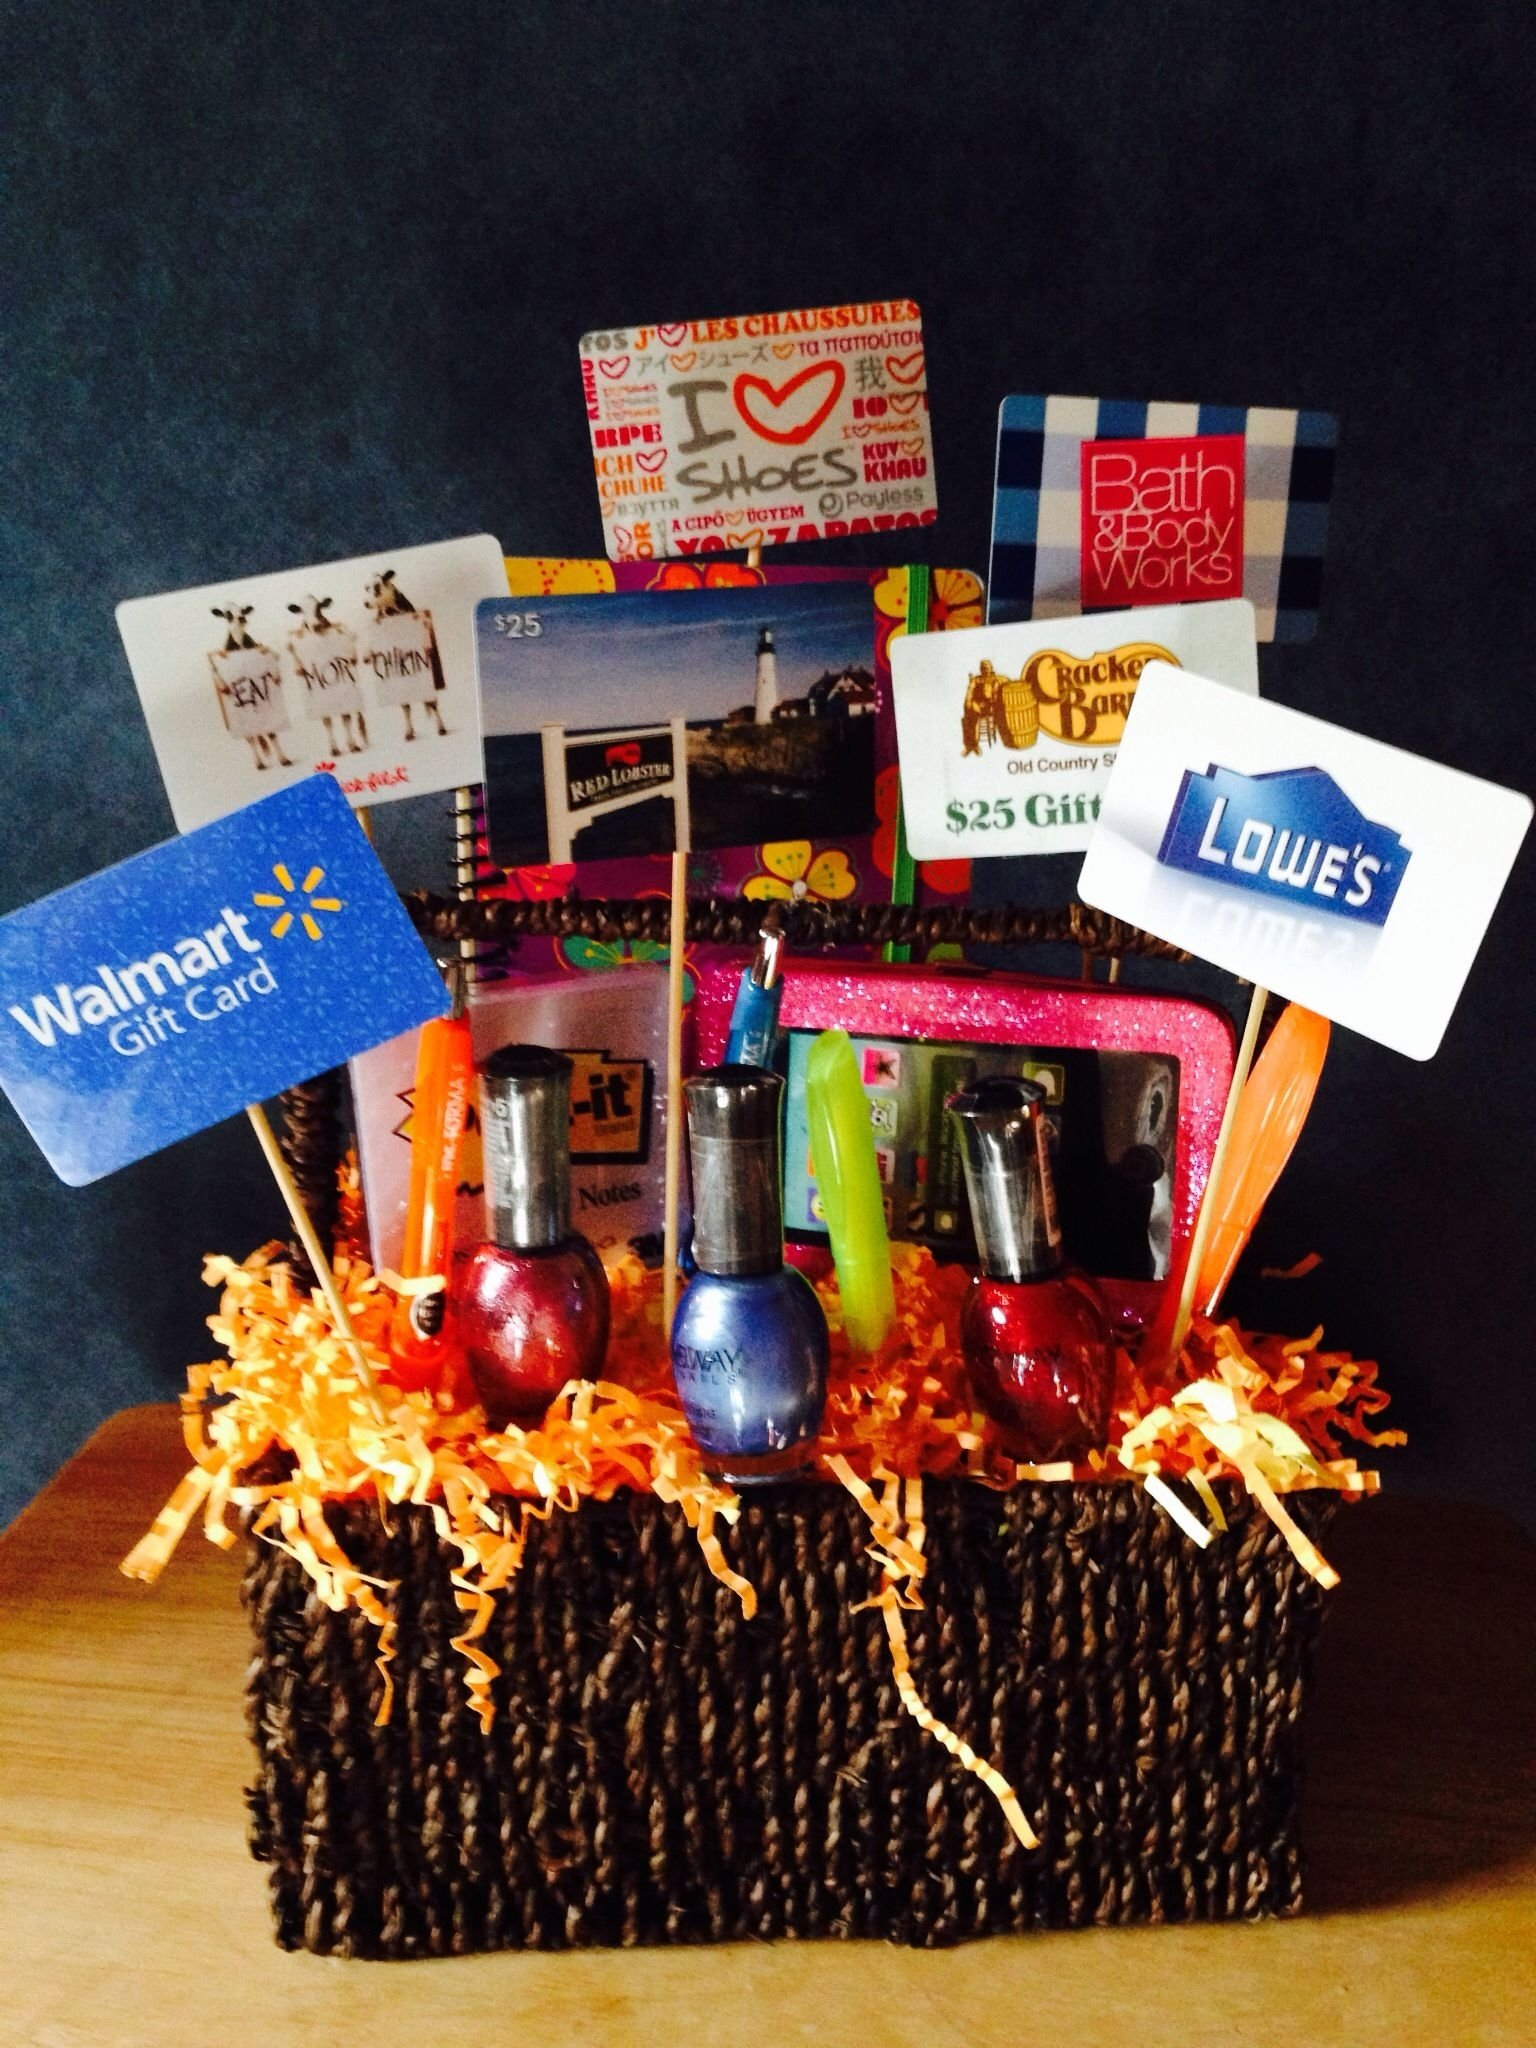 10 Best Gift Card Gift Basket Ideas kara and mason love this idea lowes hobby lobby home depot bed 1 2020